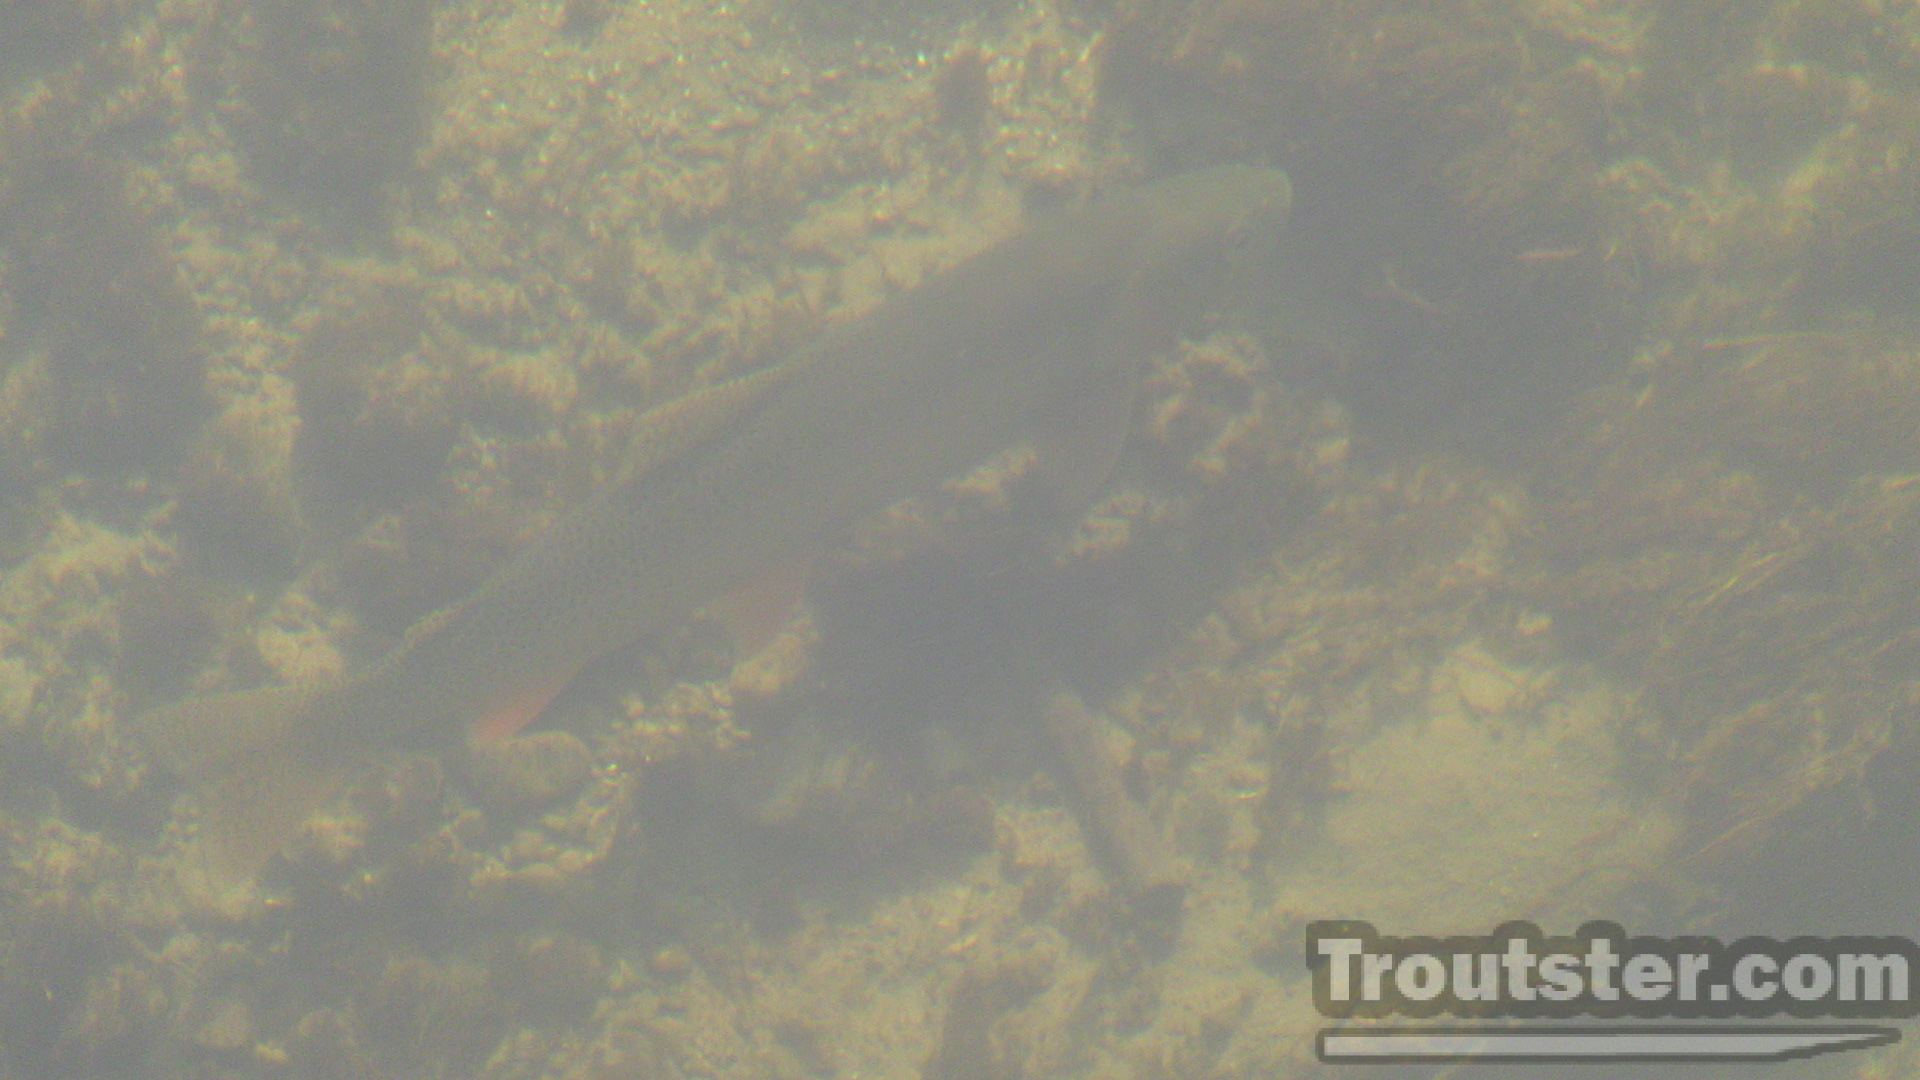 Tips to help you see fish. This cutthroat is well hidden, but you can see it's shadow easily.